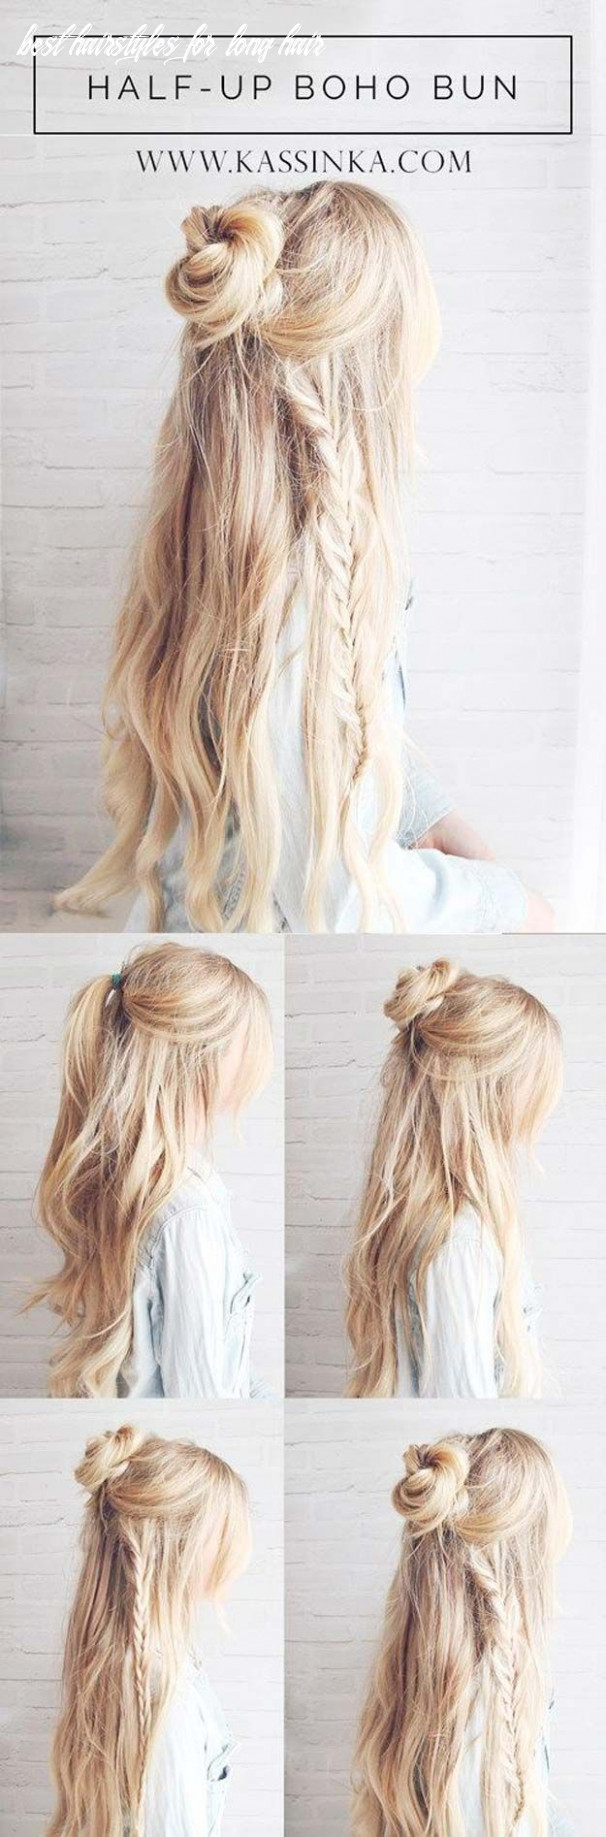 Curled hairstyles fancy 9 best hairstyles for long hair in 9